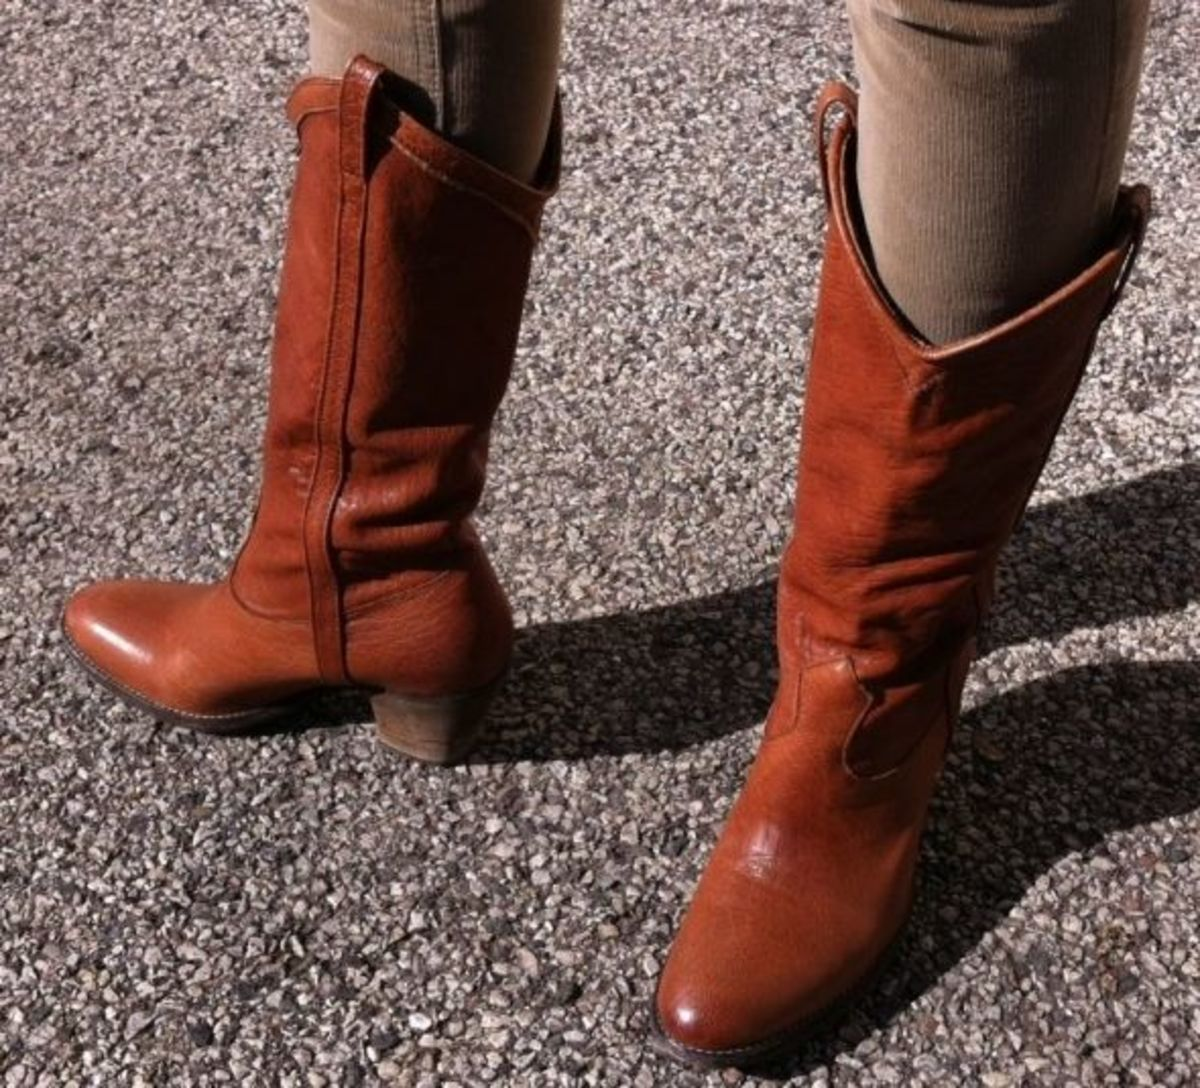 My Frye Taylor cowboy-style boots.